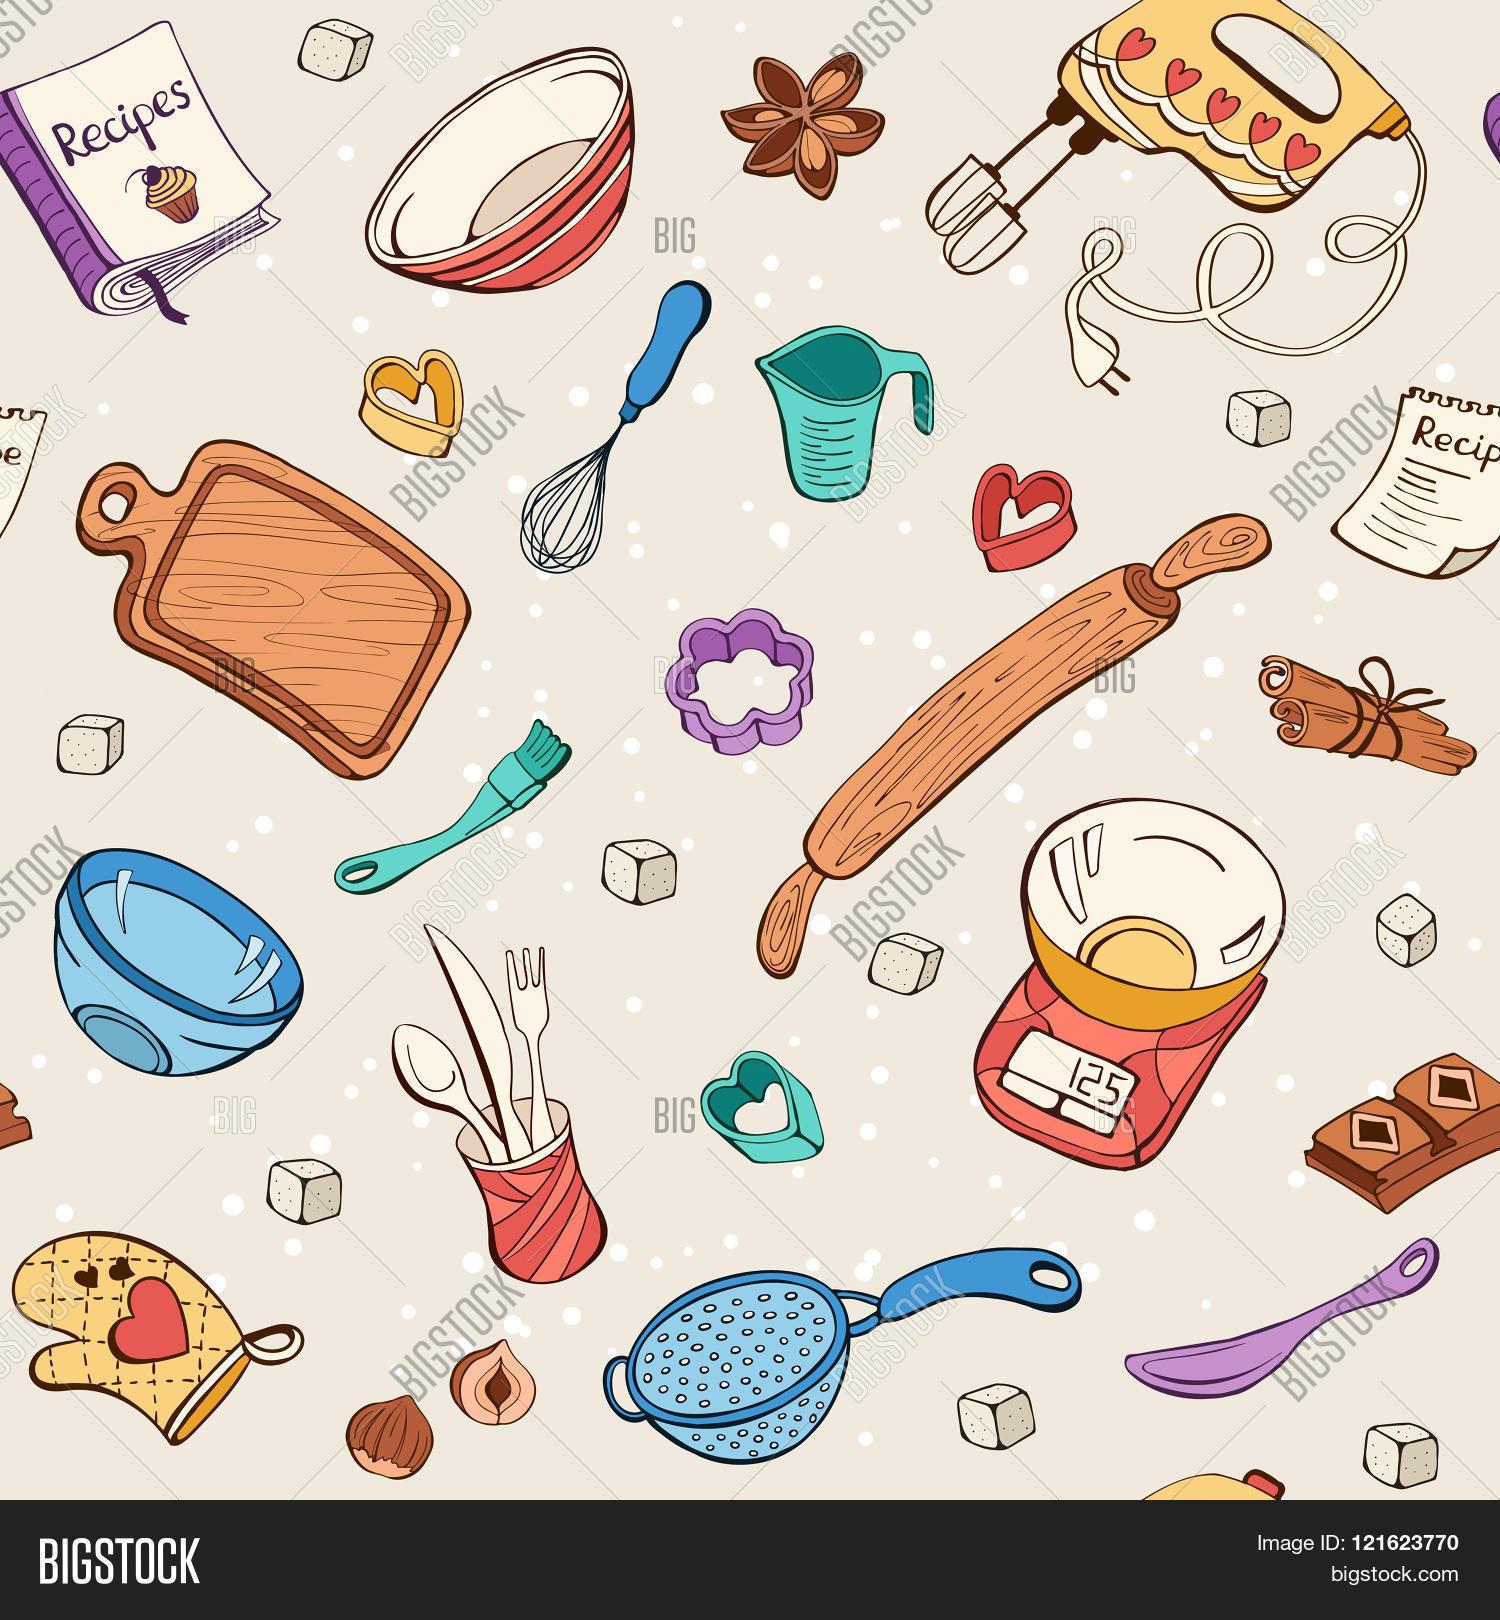 Tools drawing at getdrawings. Baking clipart background